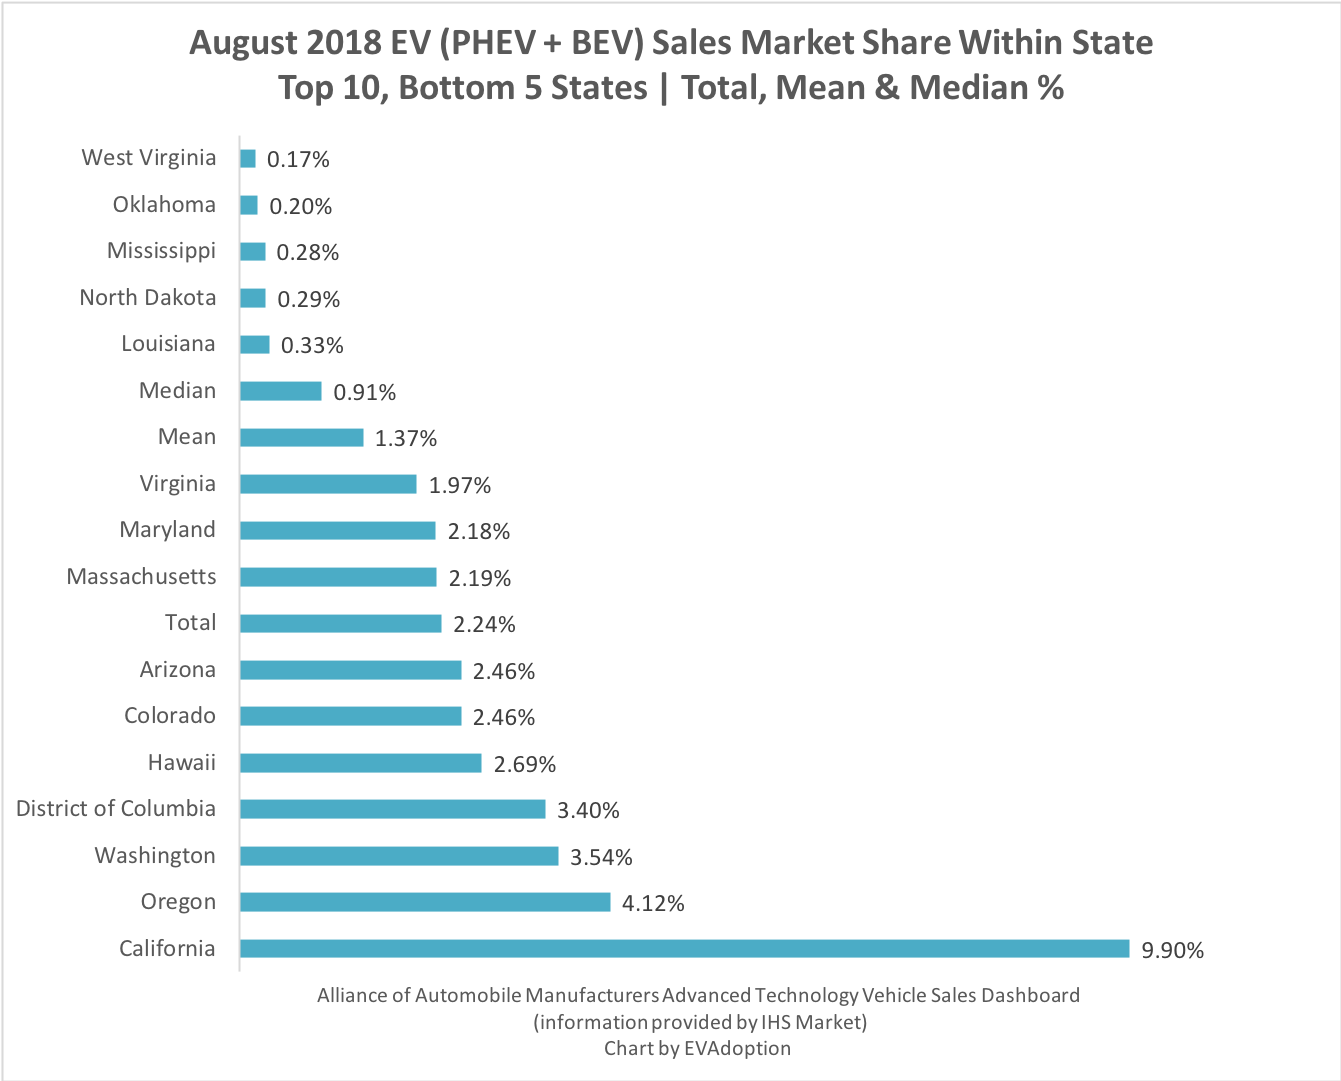 EV Marketshare August 2018 Top 10 Bottom 5 States